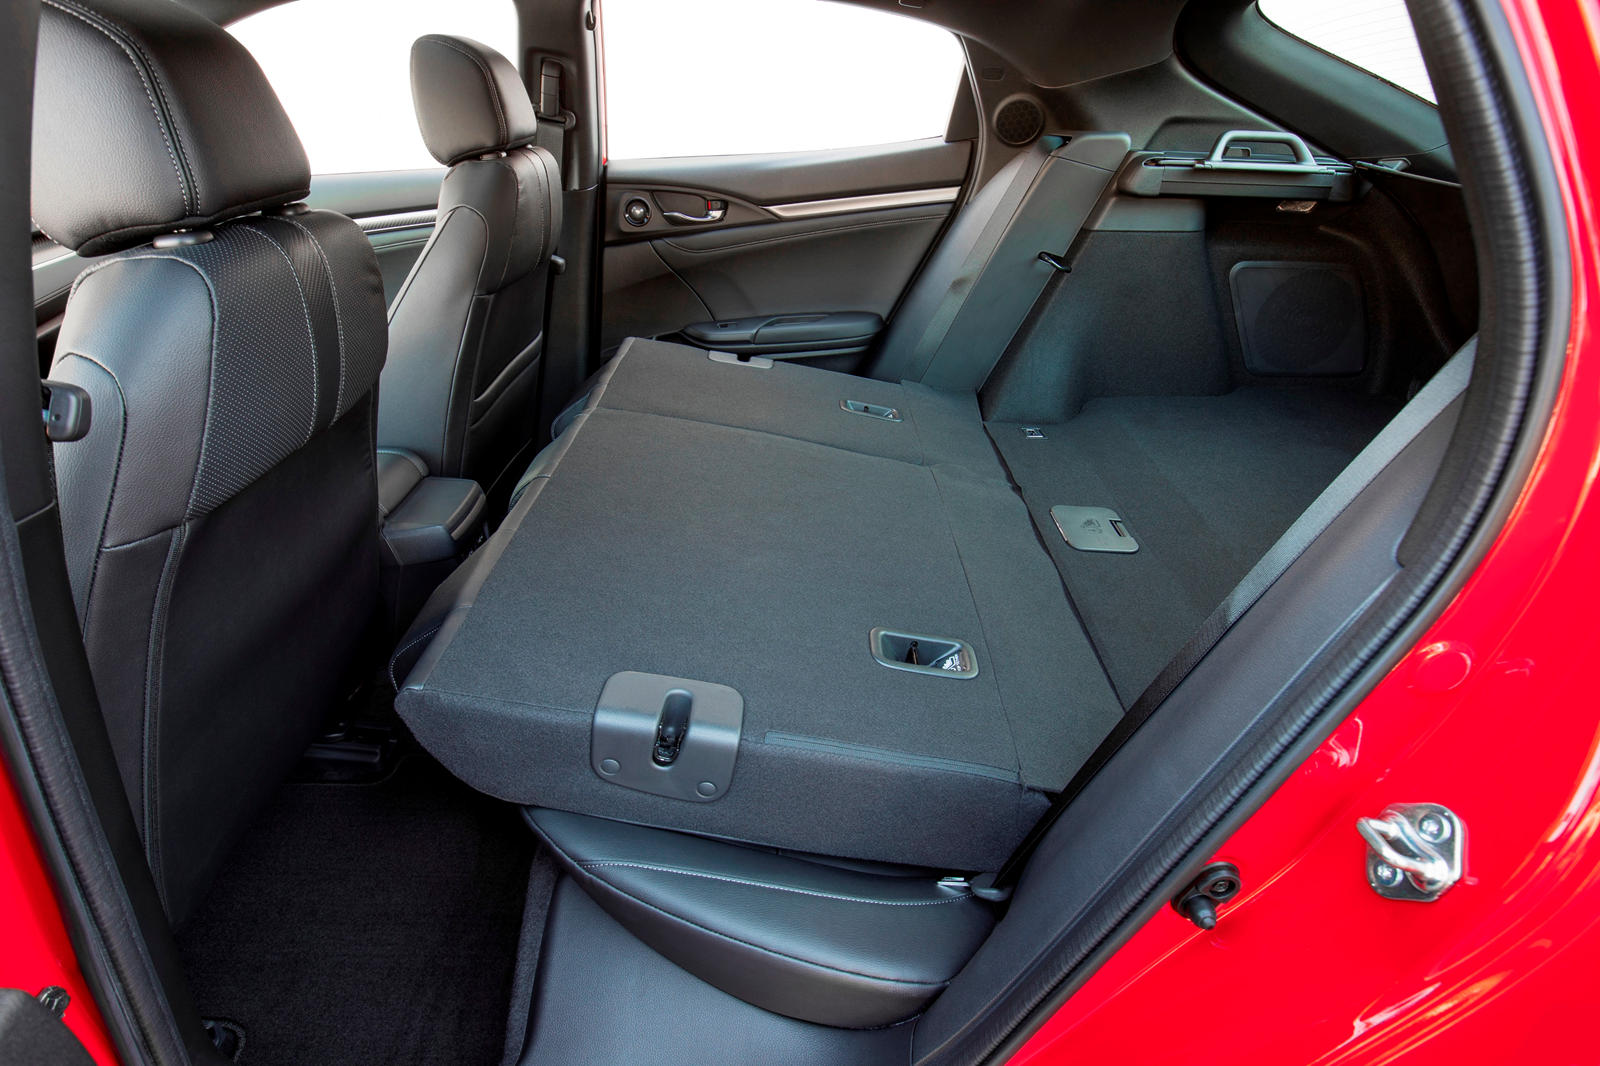 2020 Honda Civic Hatchback Interior fold sheet